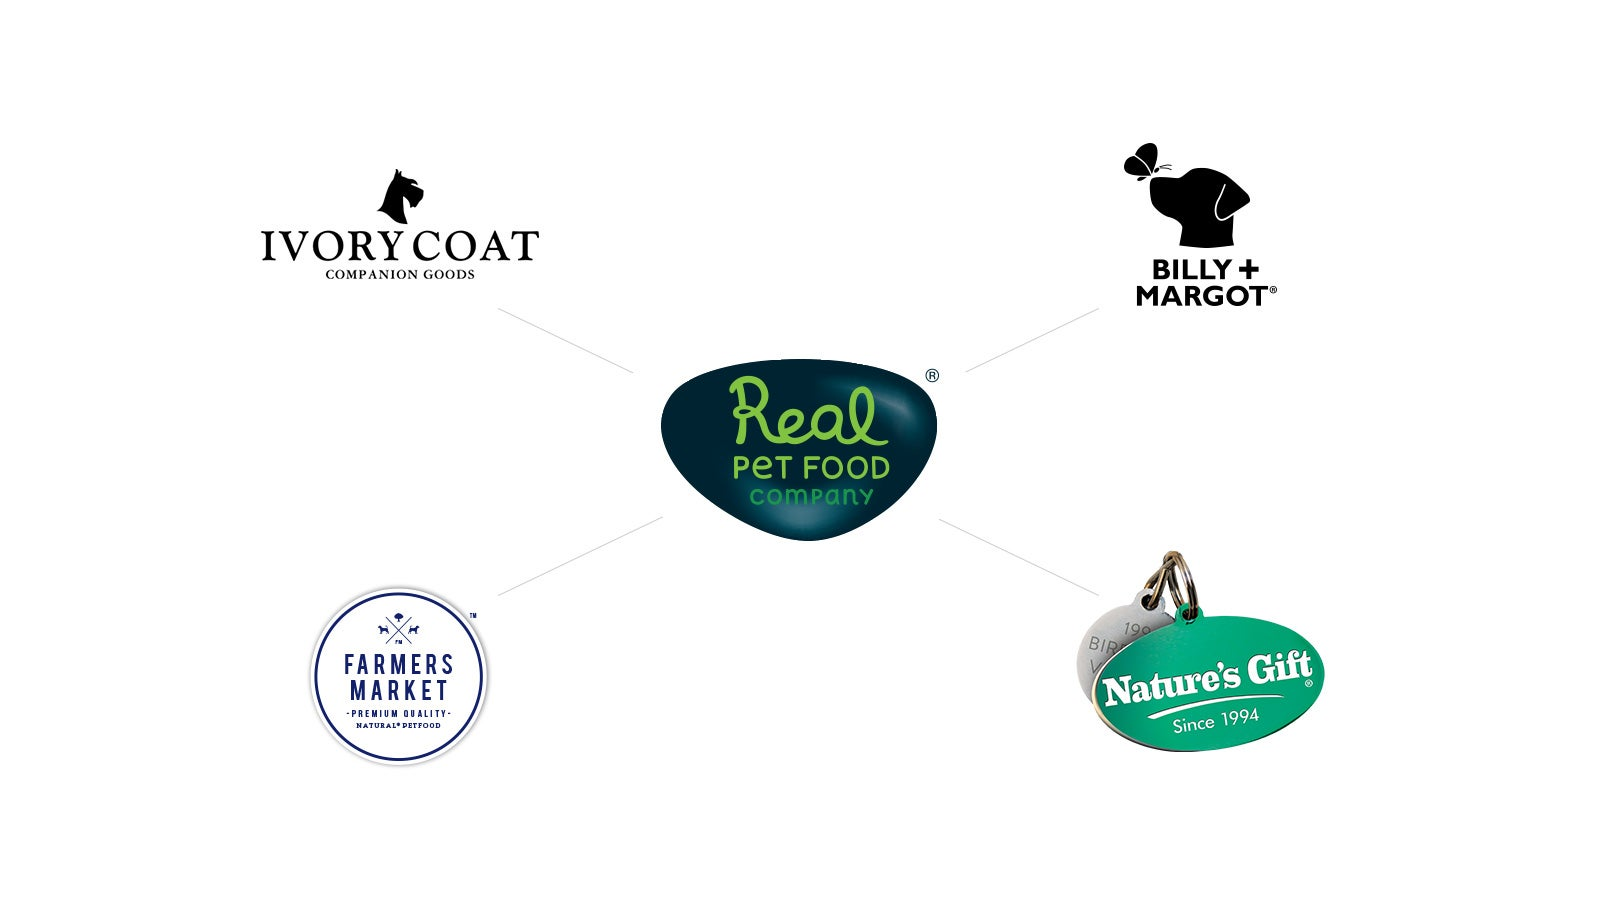 Real Pet Food Company   Real Pet Food logo and subsidiary company logos for Ivory Coat, Farmers Market, Nature's Gift and Billy + Goat   Devotion